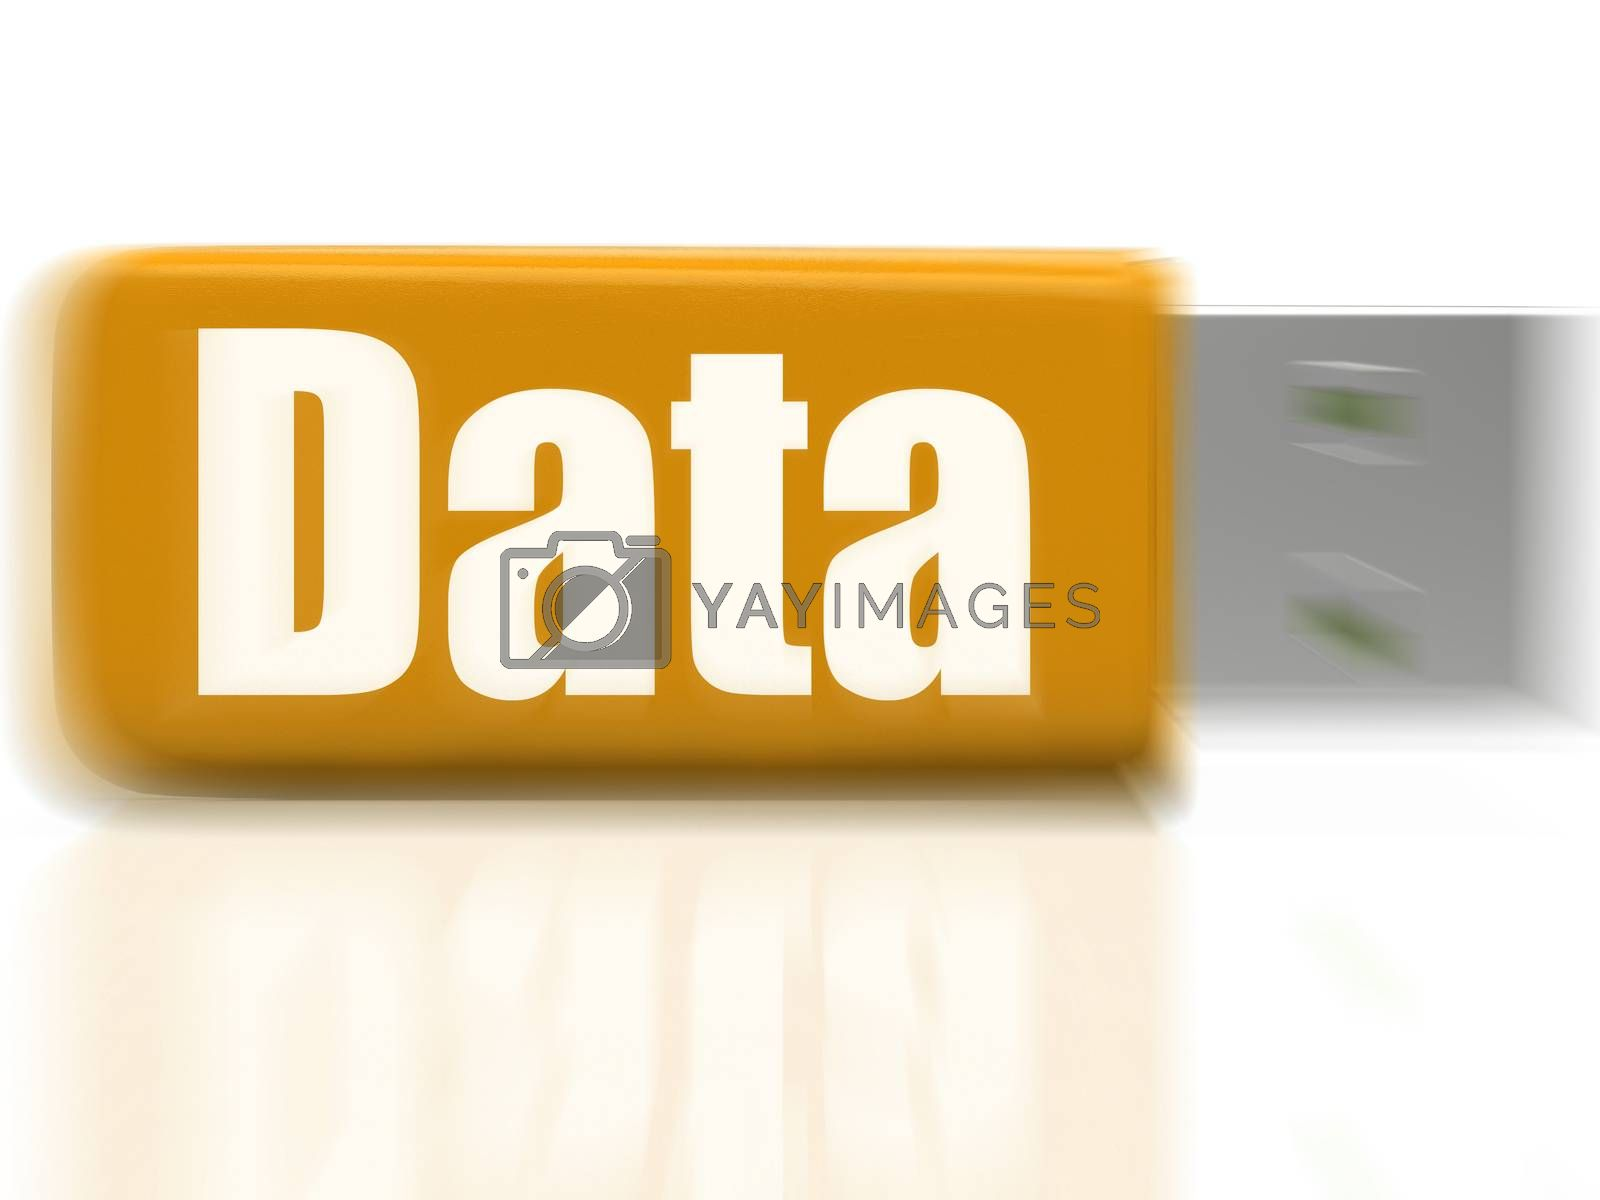 Data USB drive Shows Digital Information And Dataflow by stuartmiles